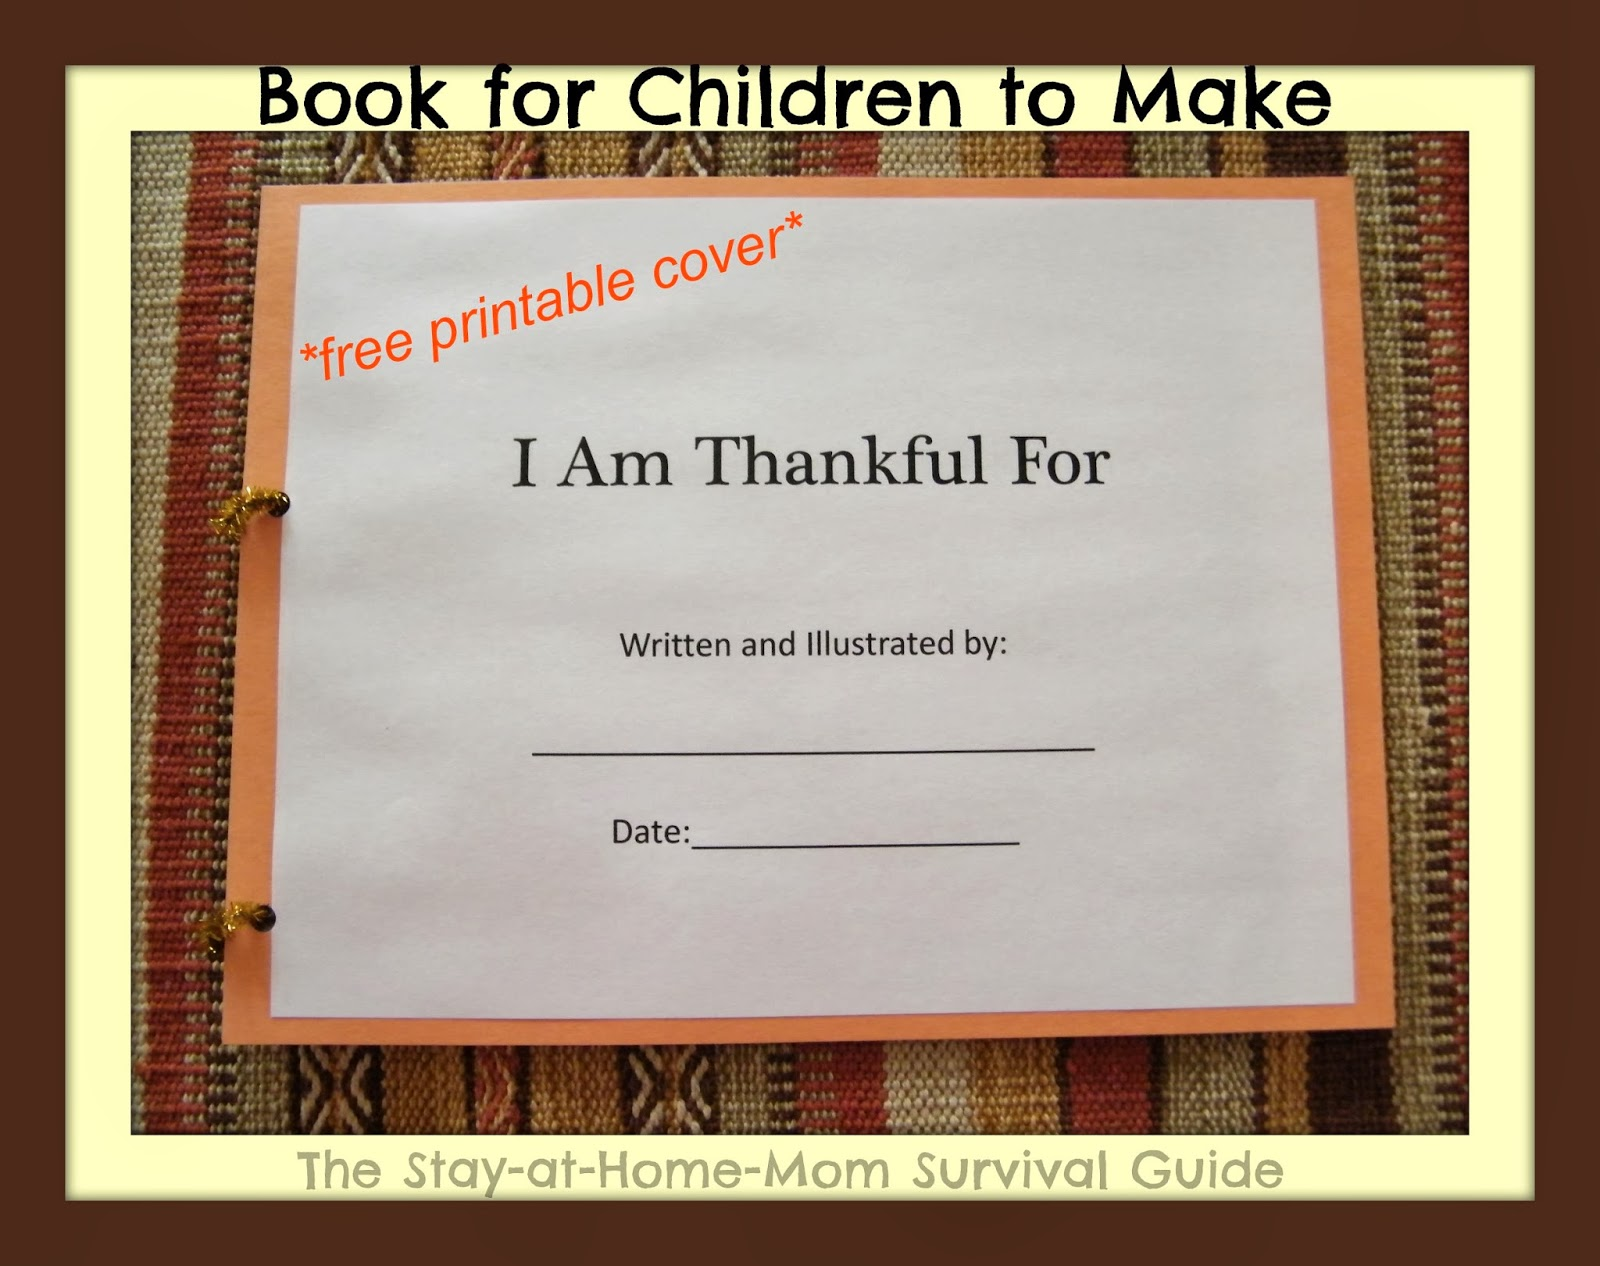 Book Cover Making Free : I am thankful book for children to make the stay at home